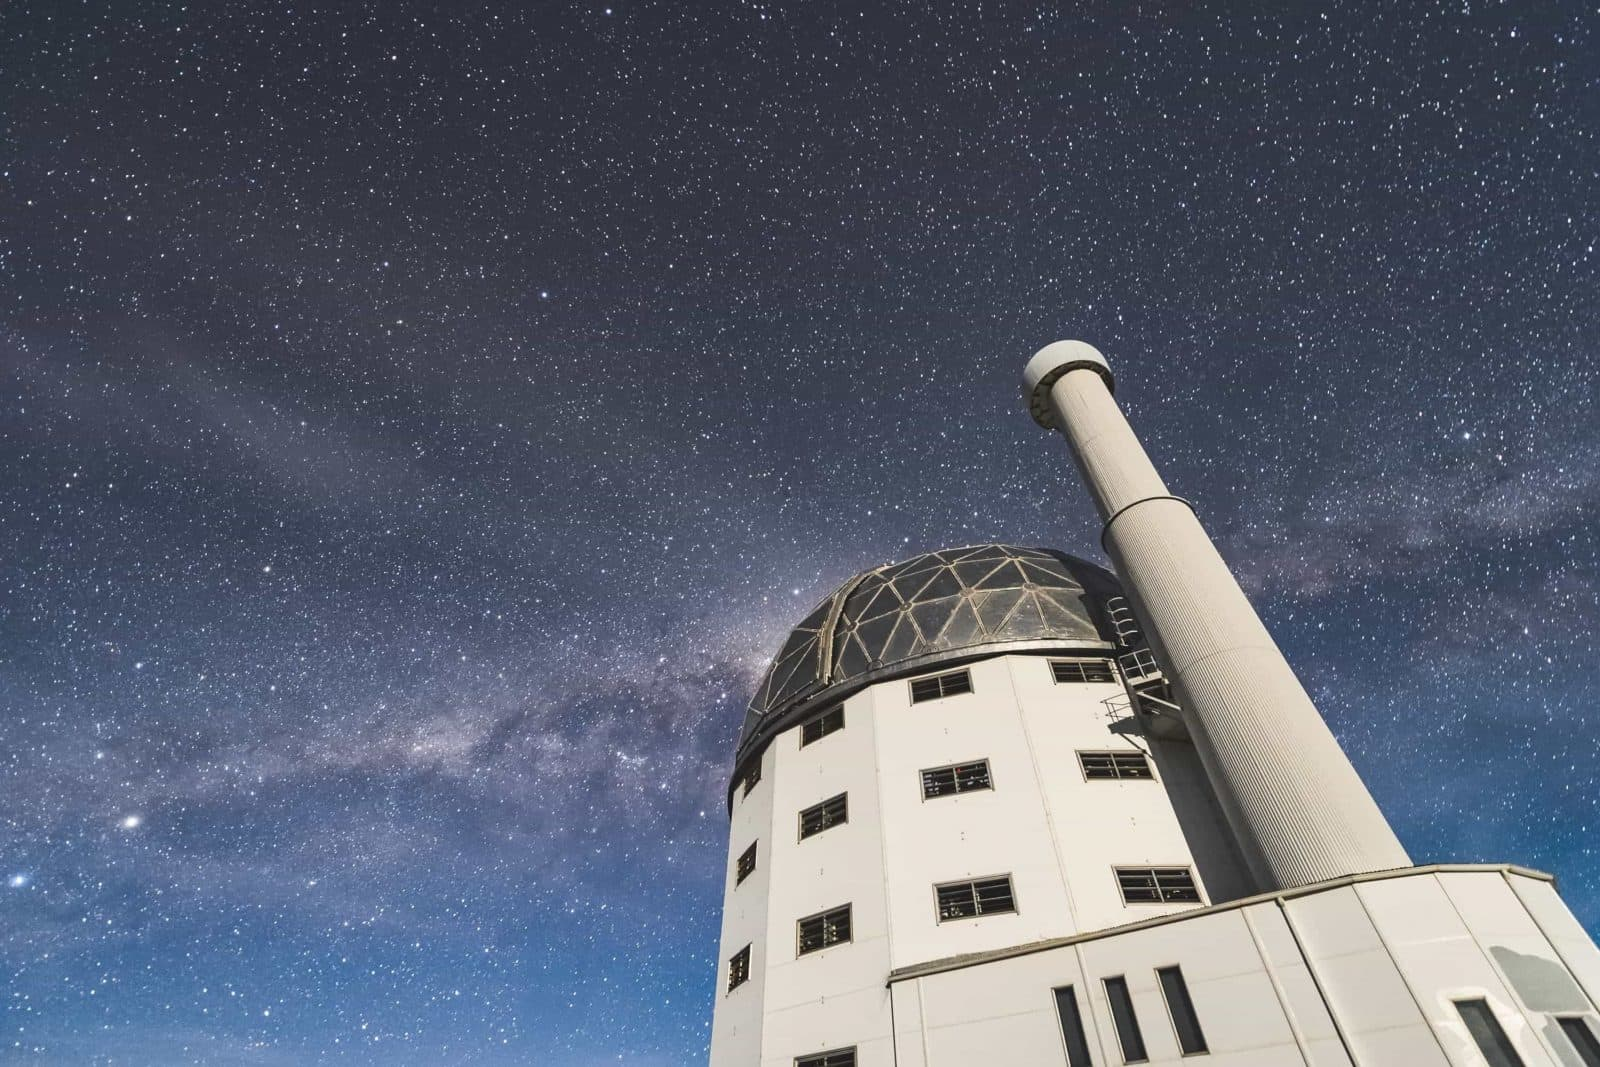 Southern Africa Large Telescope under a starry sky with a visible Milky Way